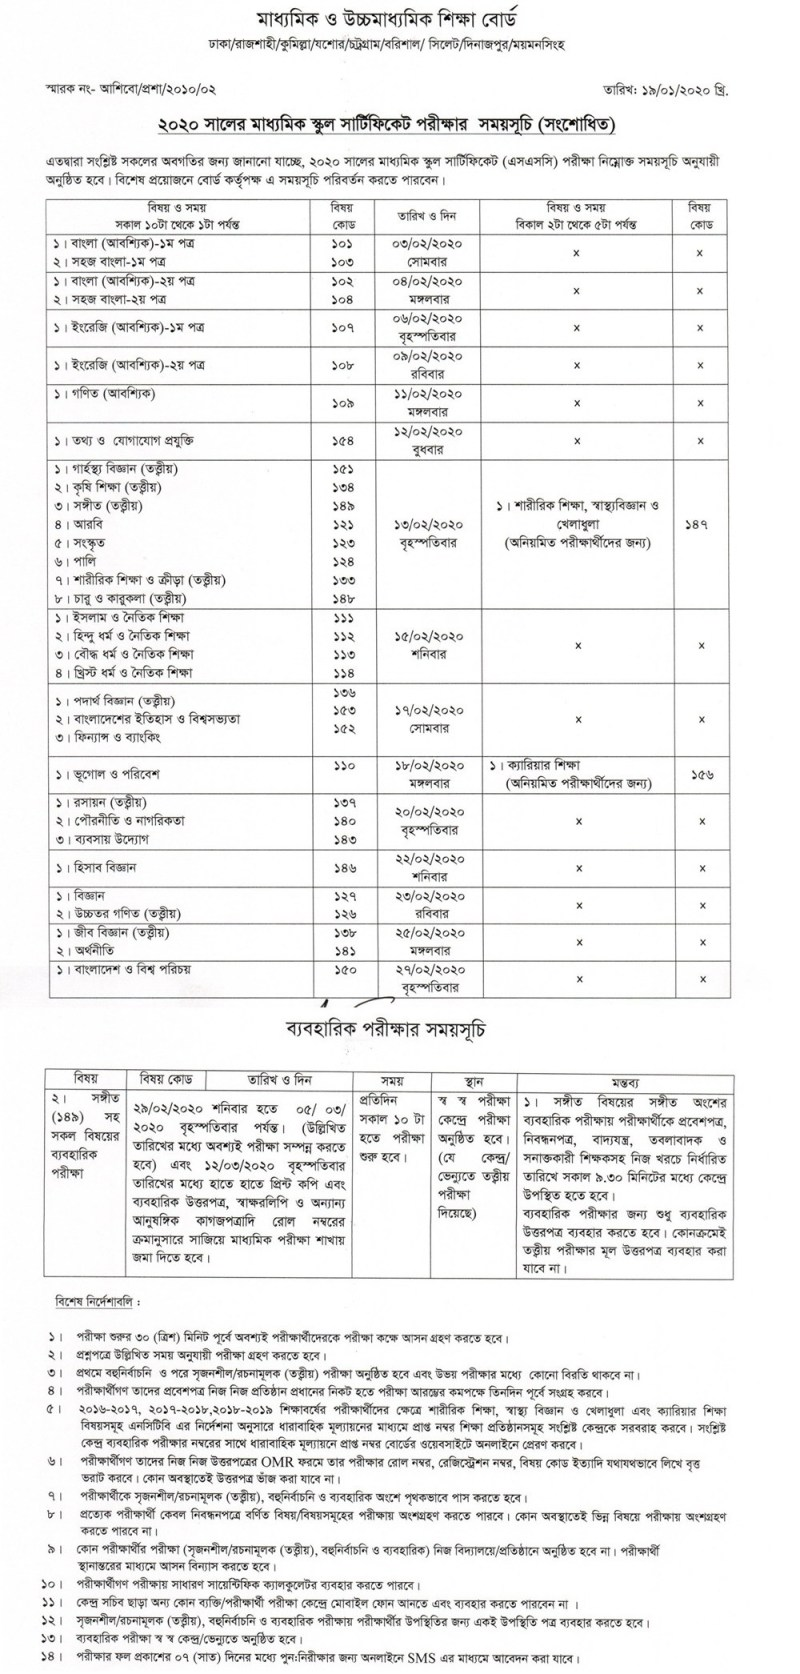 SSC Exam Routine 2020 All Education Board